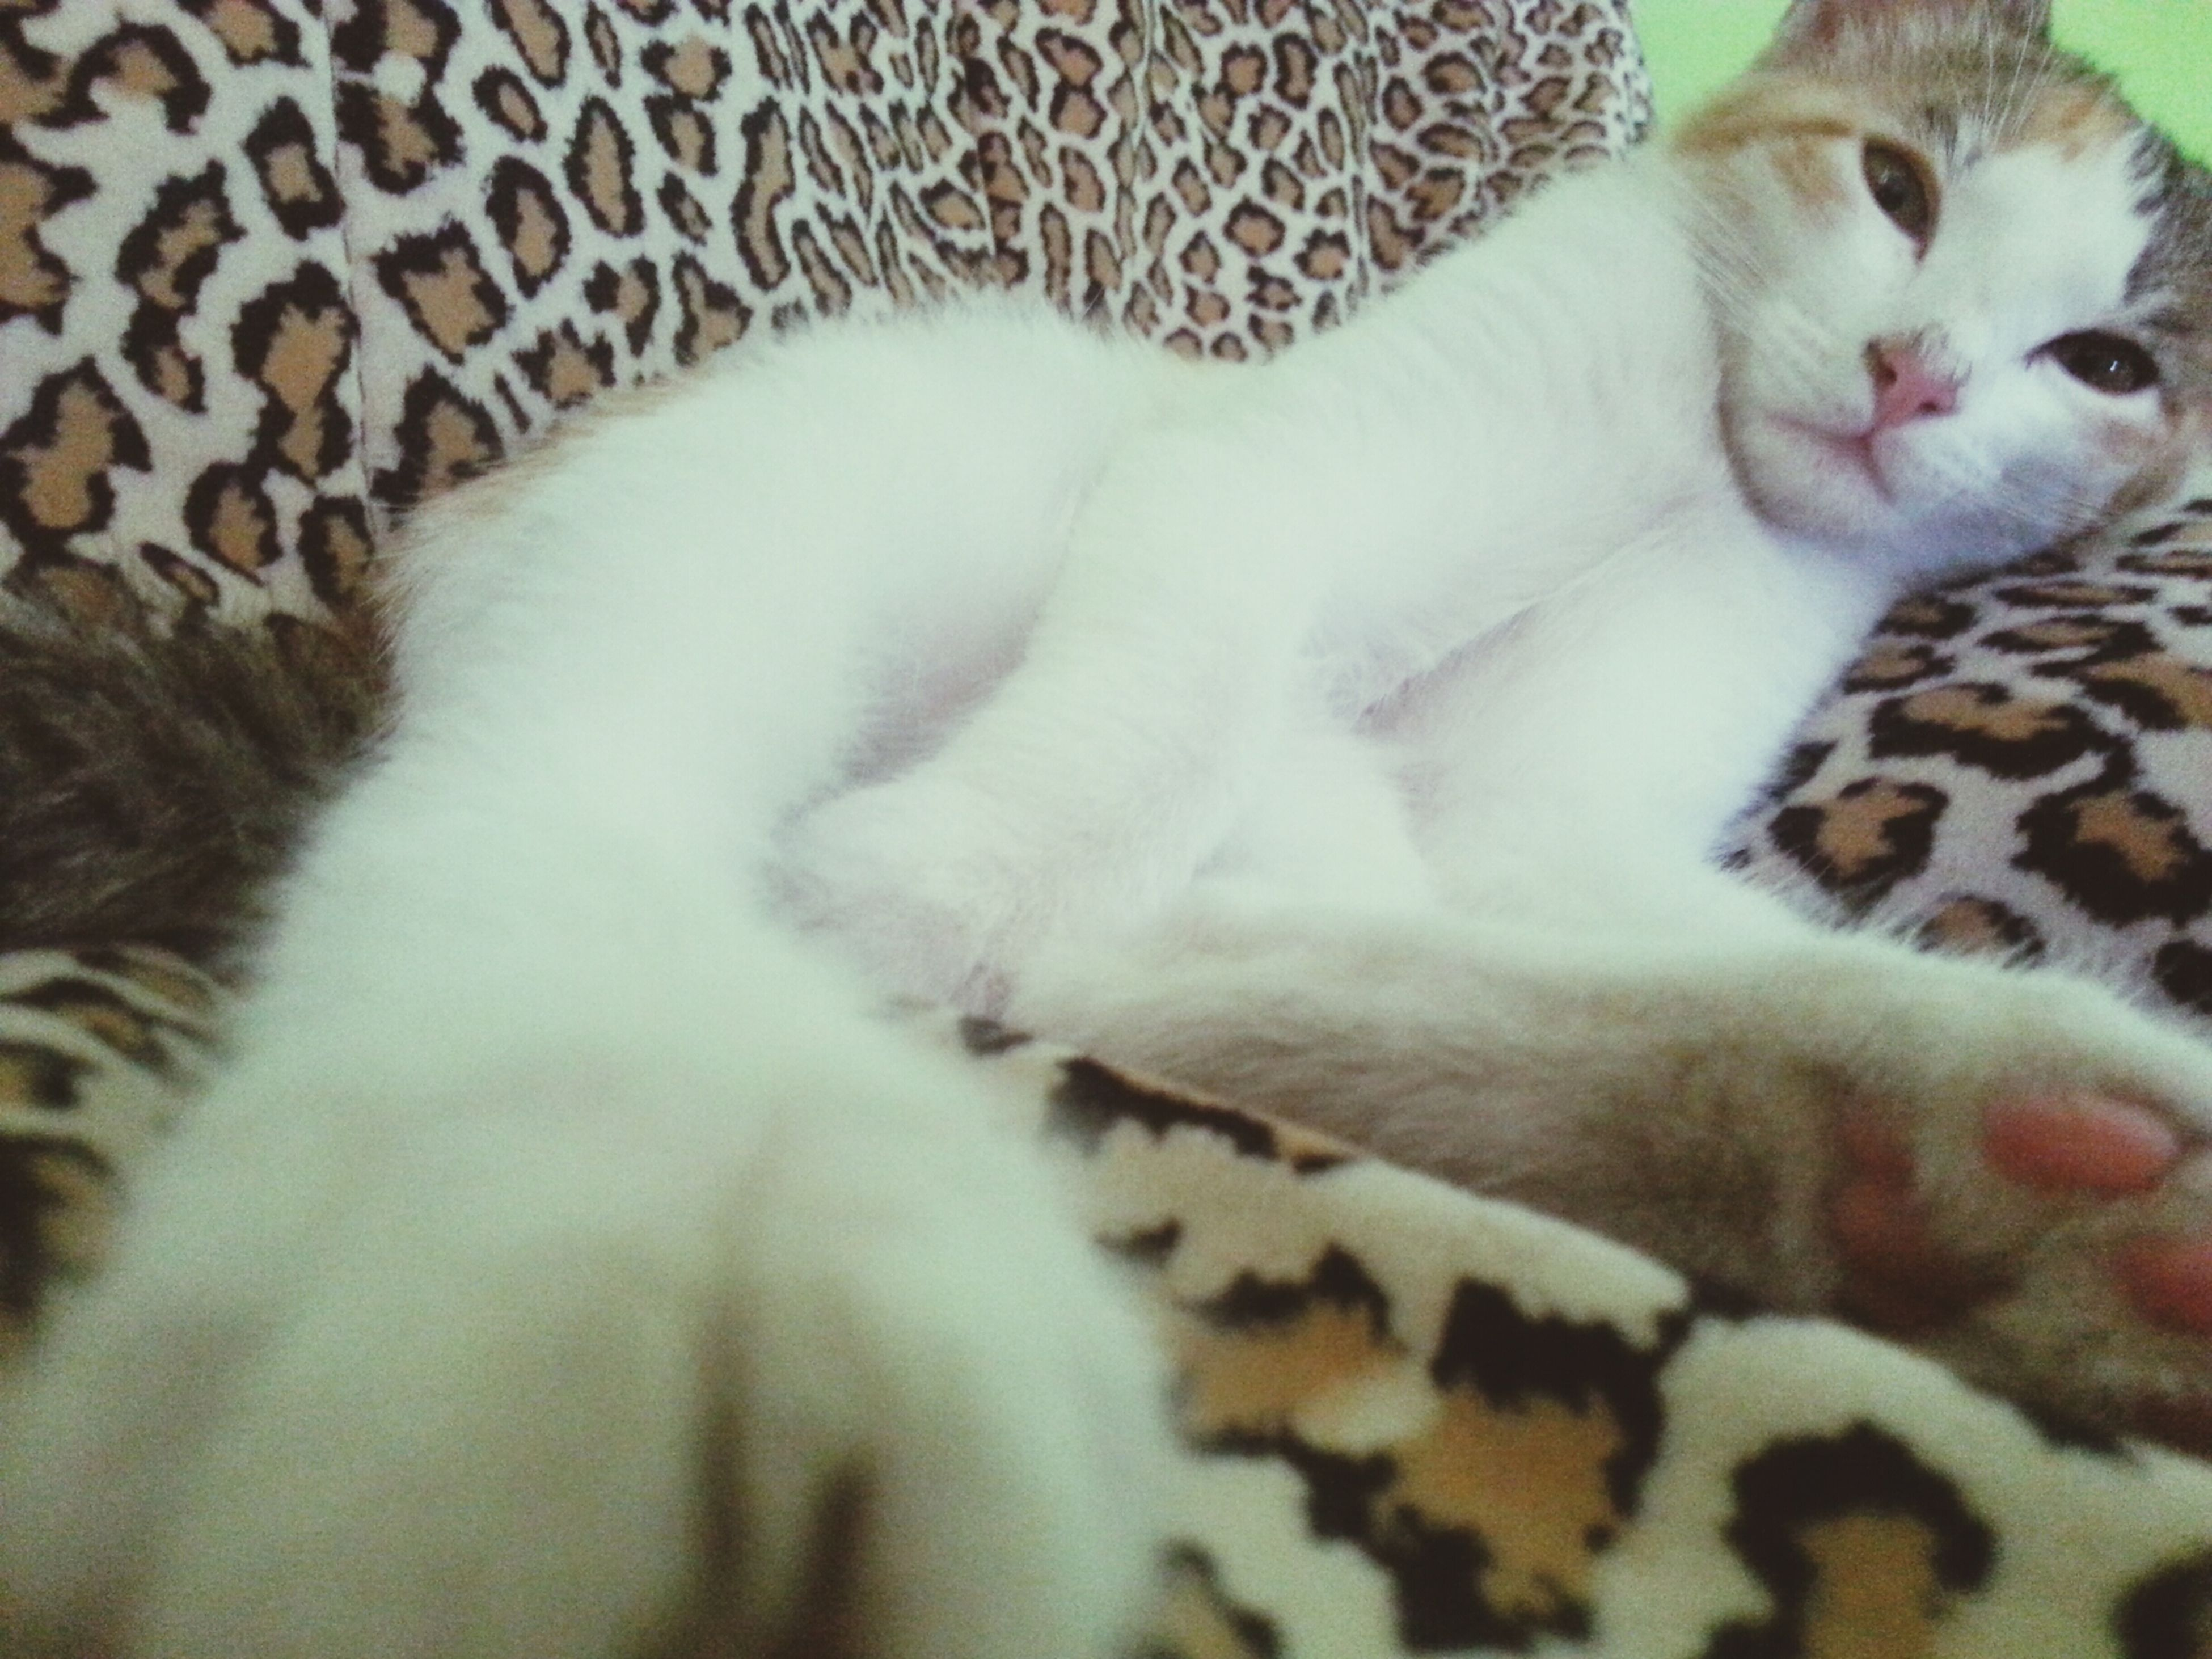 animal themes, domestic cat, cat, pets, mammal, feline, domestic animals, indoors, relaxation, one animal, resting, lying down, sleeping, bed, whisker, close-up, eyes closed, home interior, comfortable, two animals